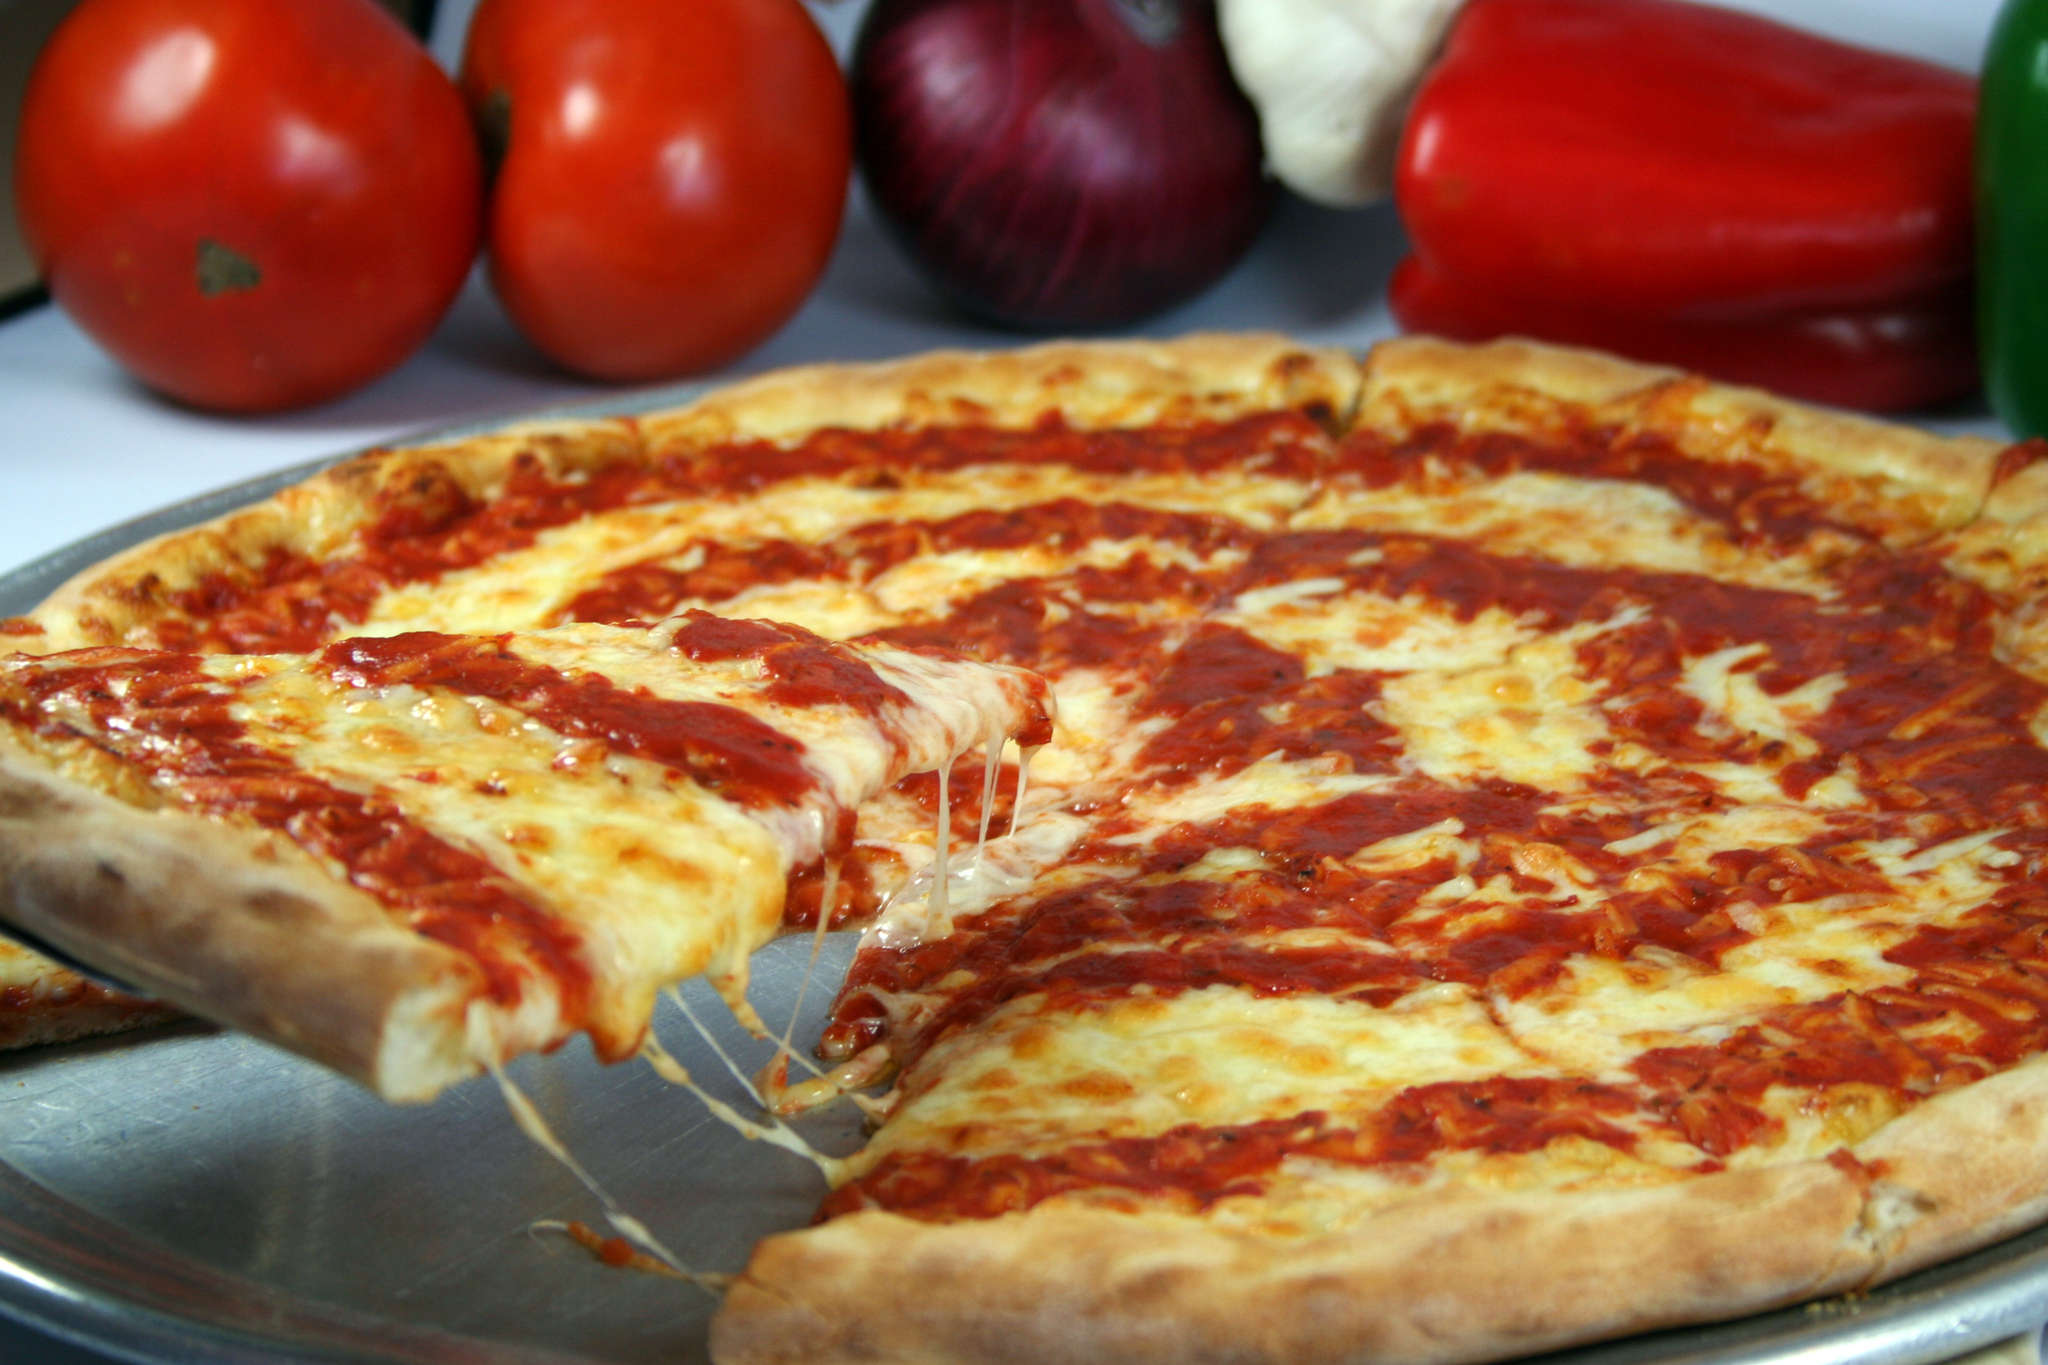 A slice from Grotto's